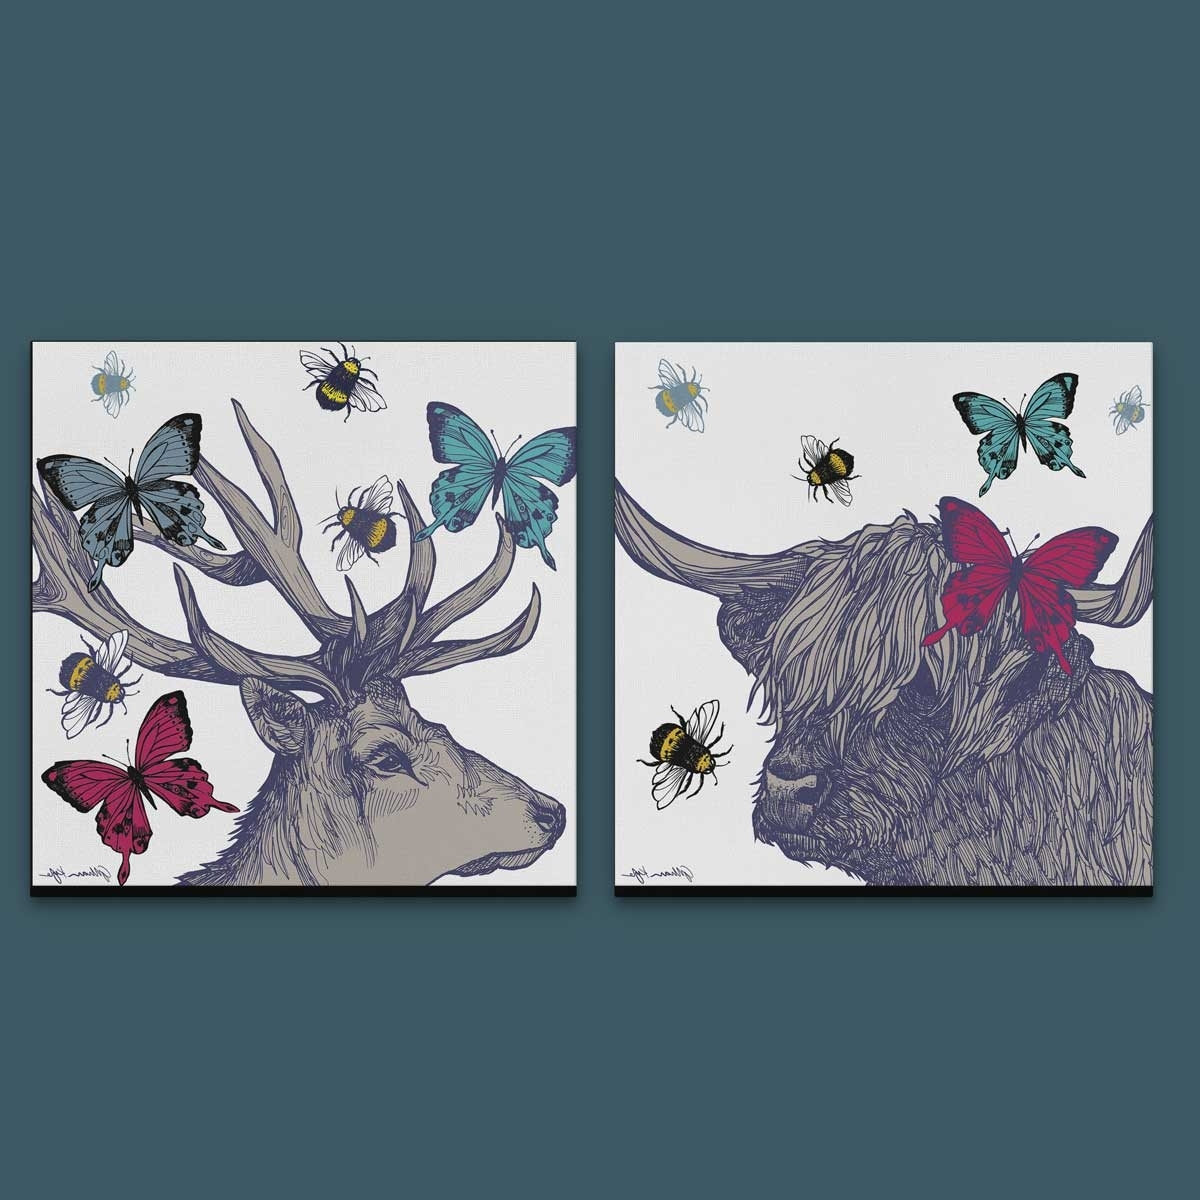 Fashionable Gillian Kyle Scottish Wall Art Stag And Lola Set Of Two Canvas Prints Regarding Canvas Wall Art Pairs (View 6 of 15)